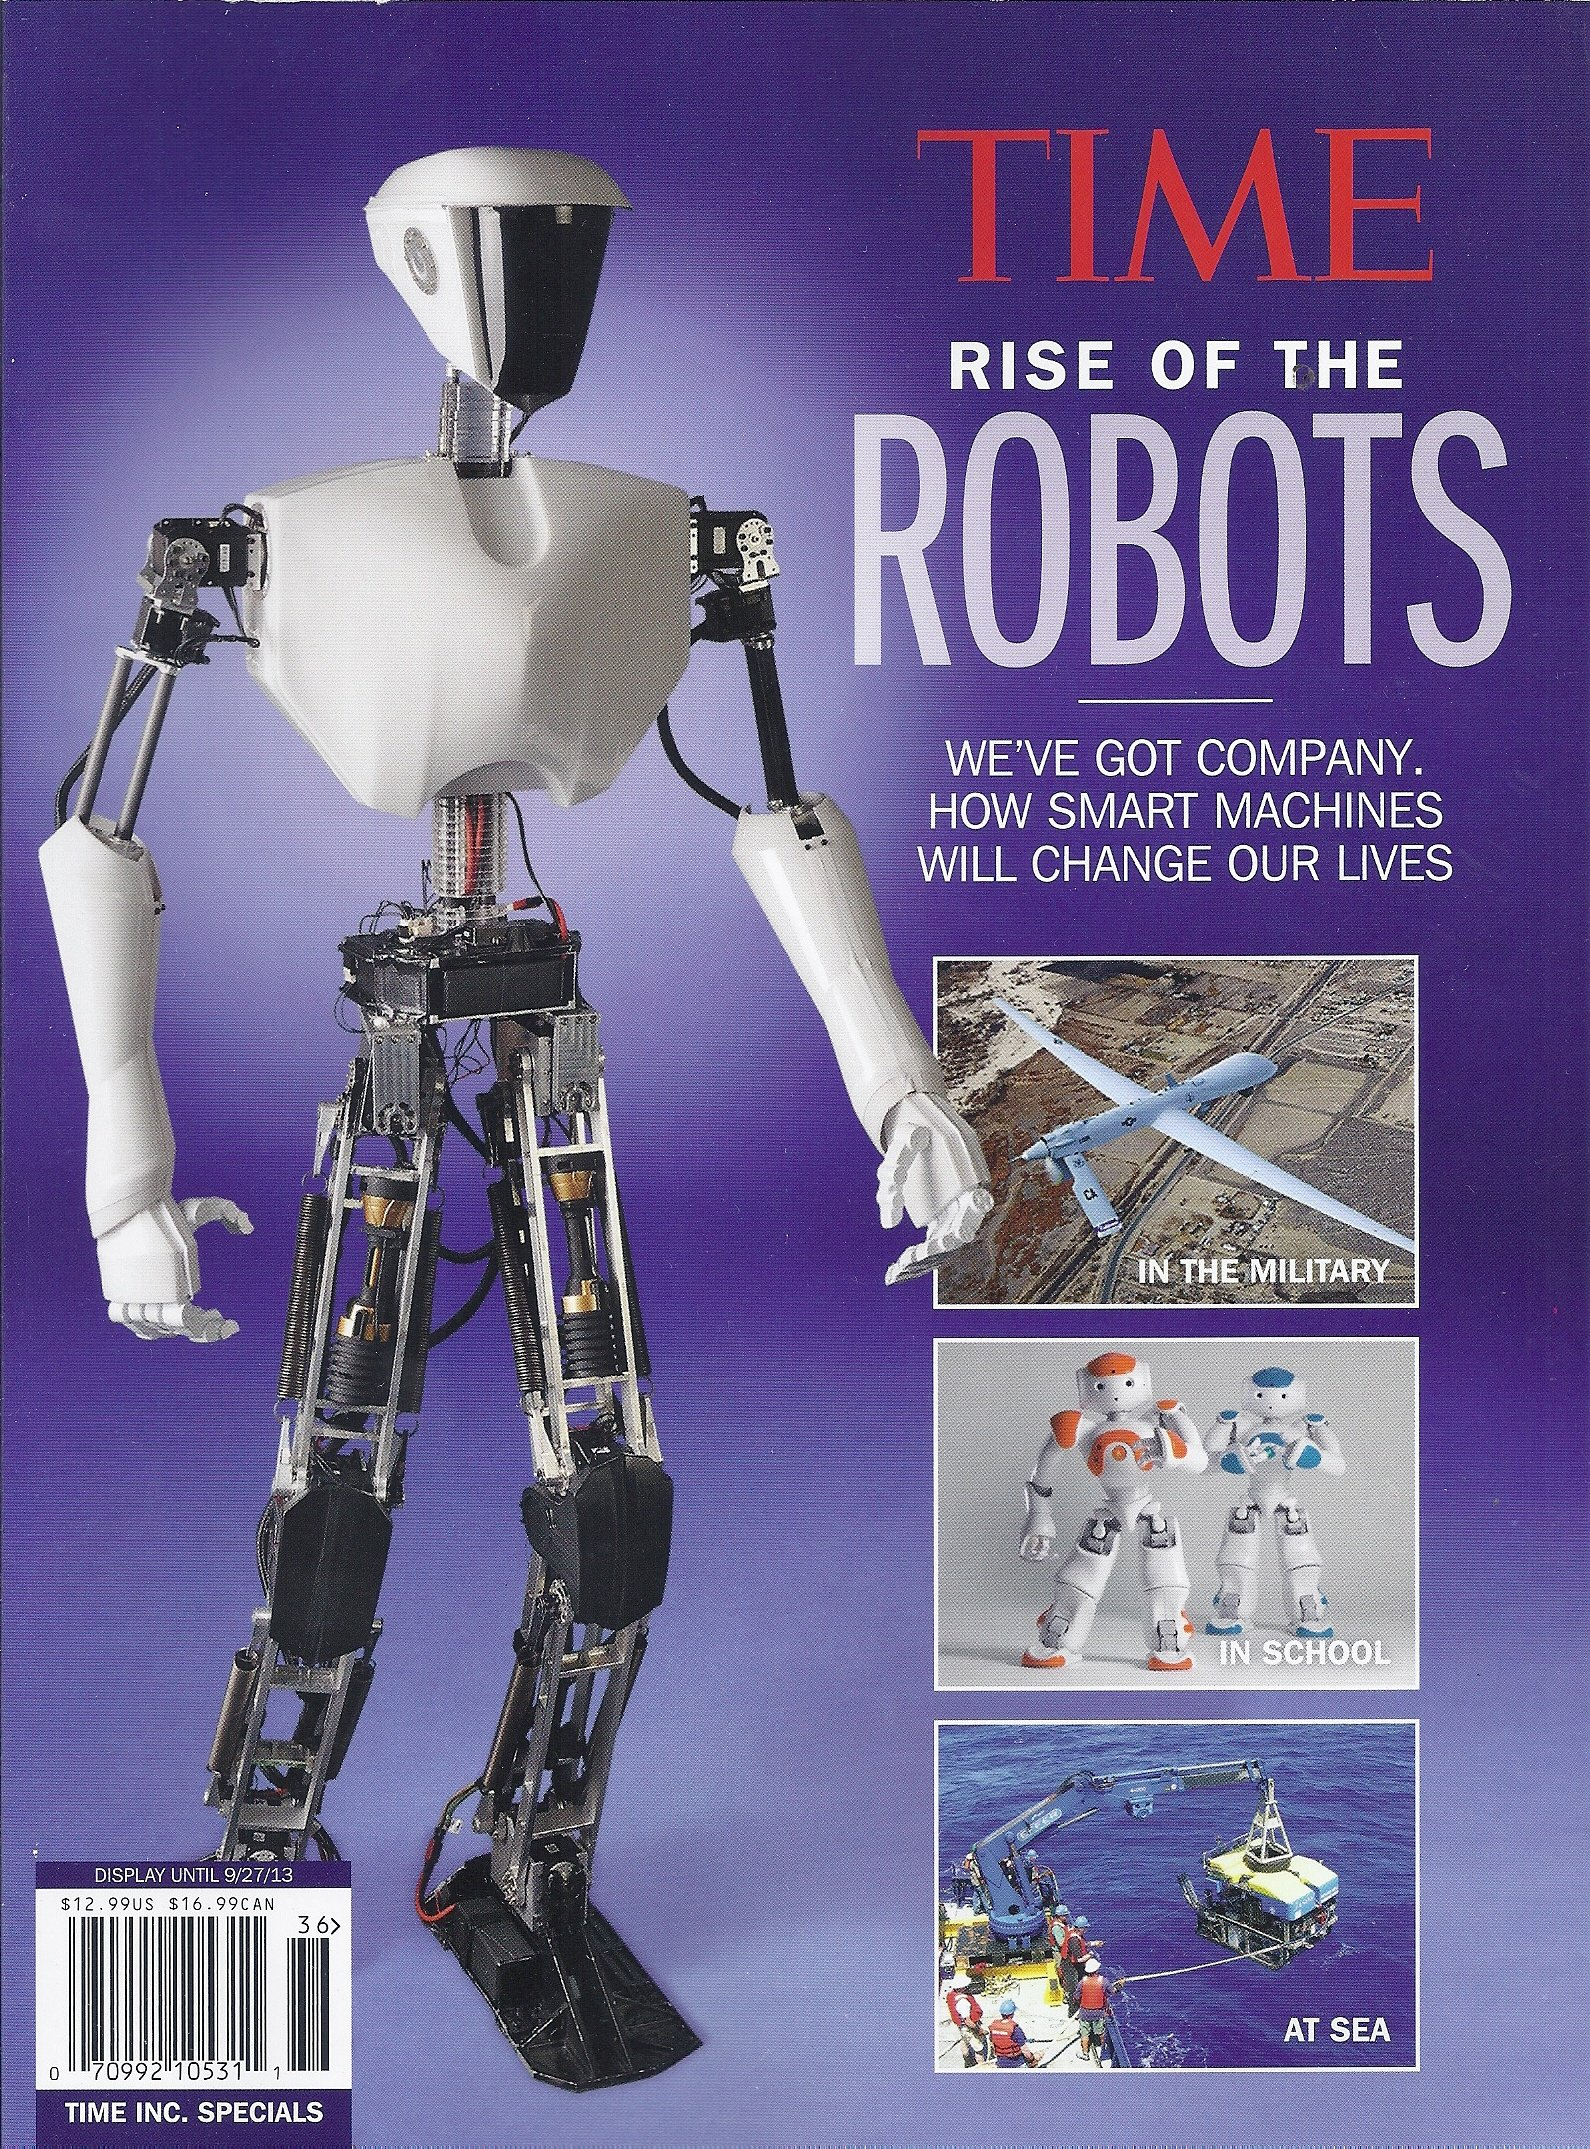 Time Magazine Rise of the Robots